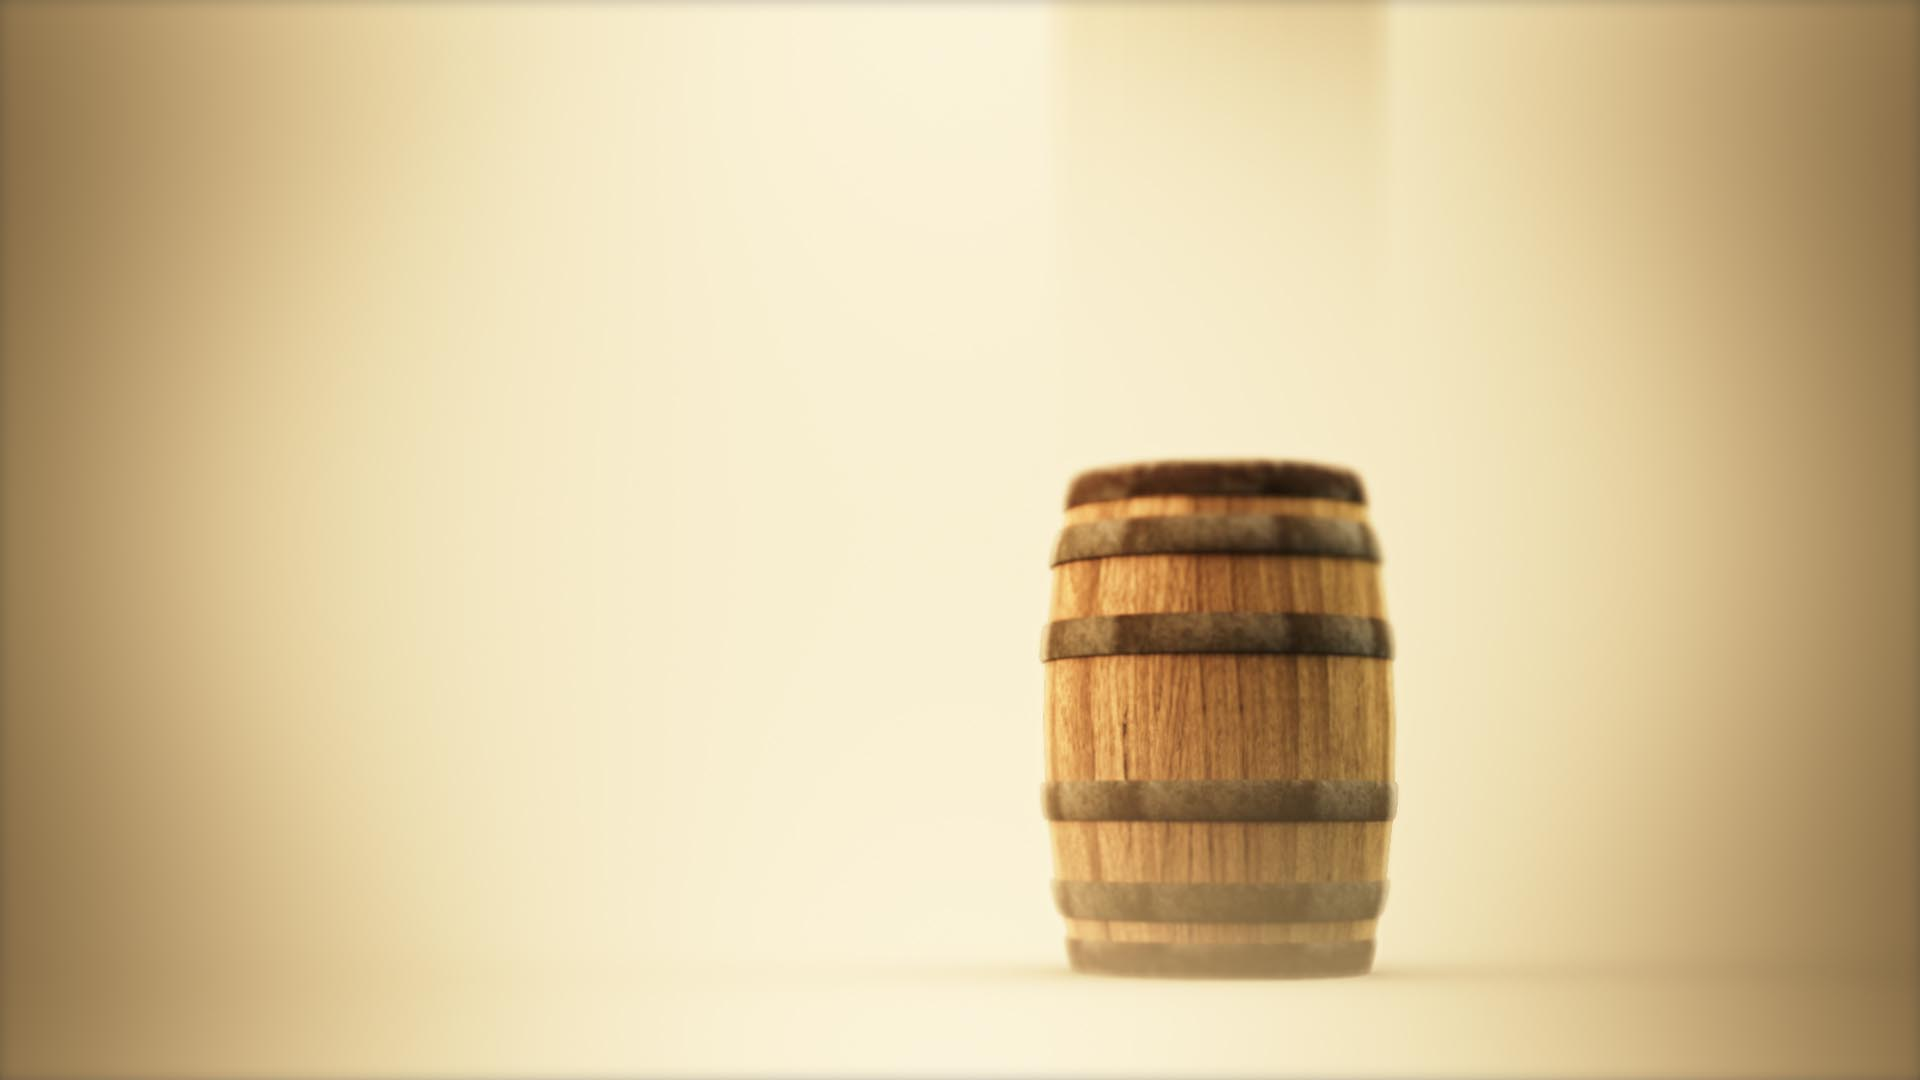 3D animation of a wooden barrel